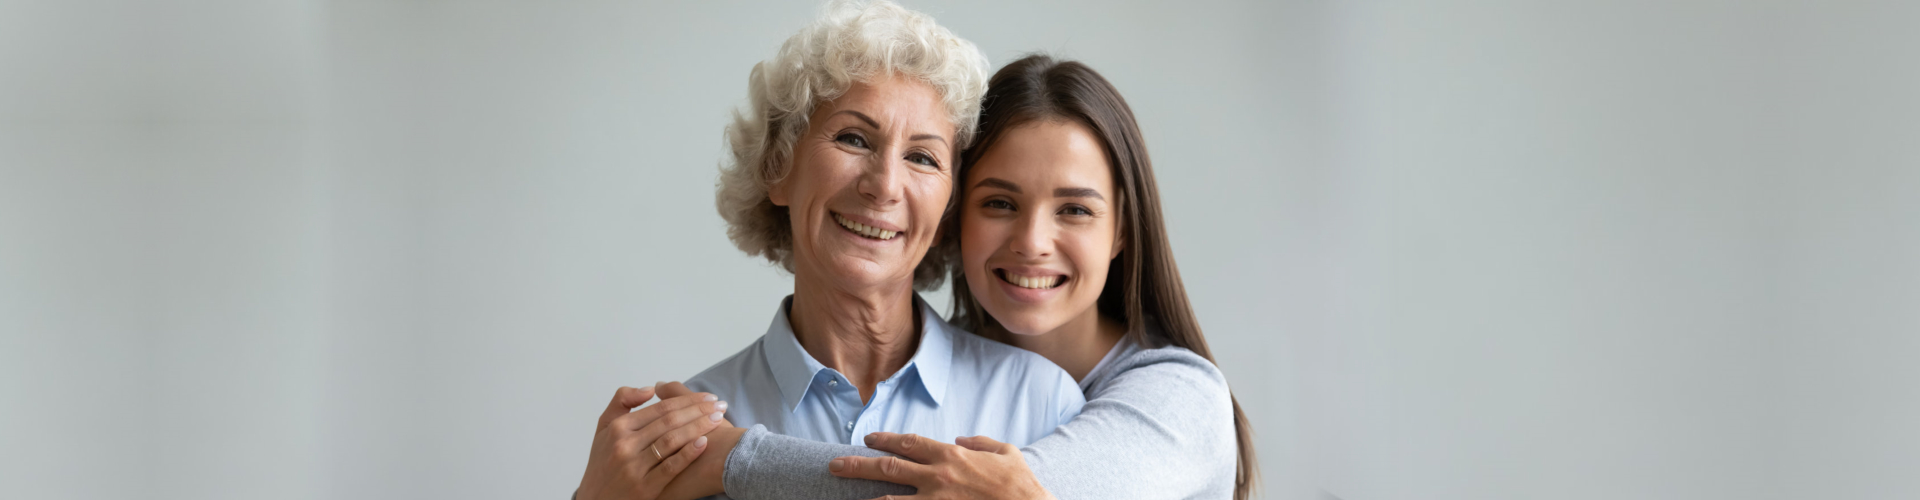 old woman and her grand daughter